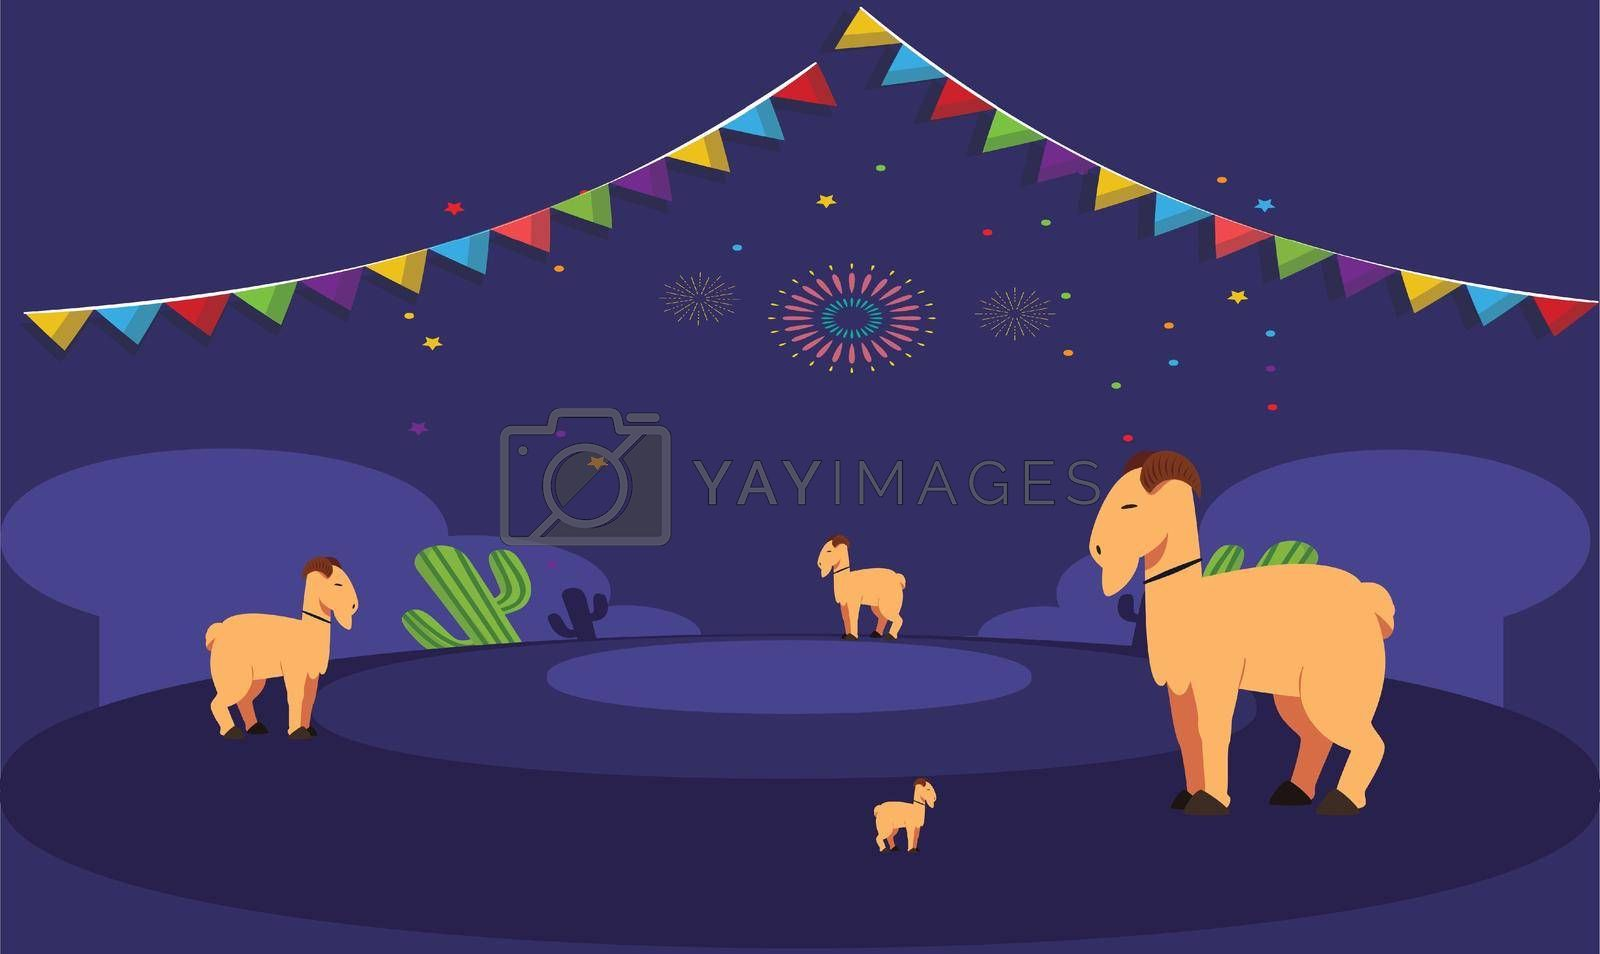 Royalty free image of animals are playing together in the evening during Christmas by aanavcreationsplus